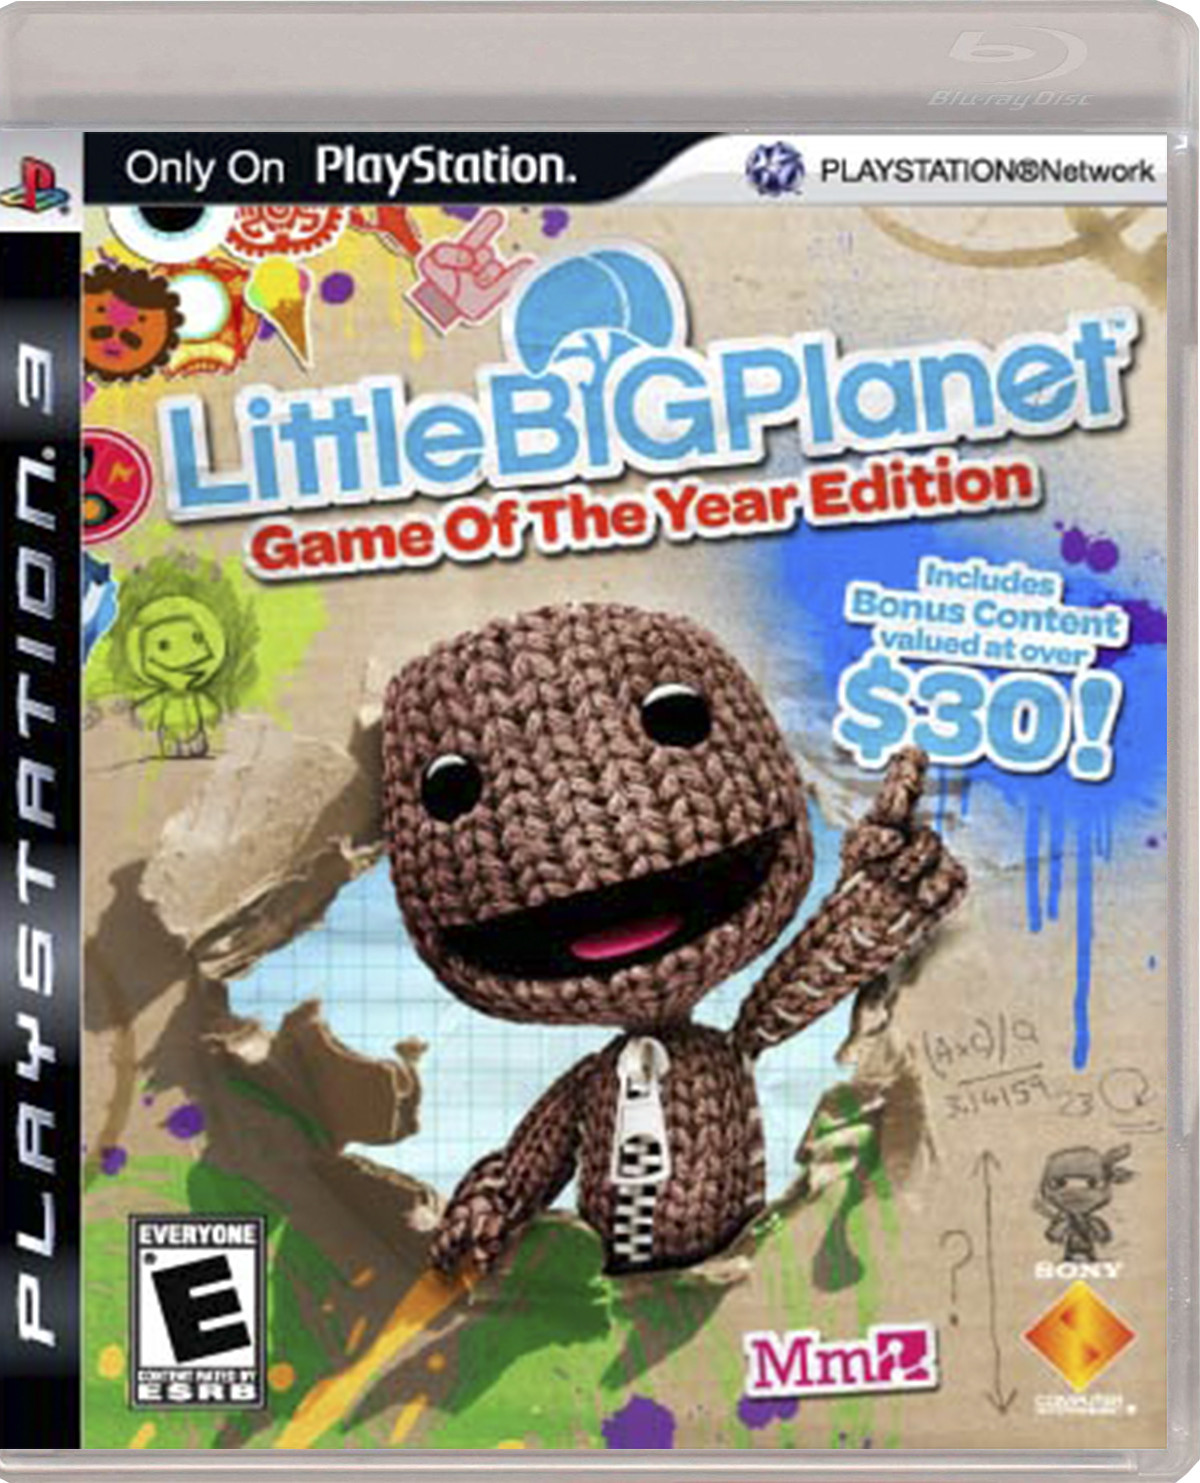 LITTLE BIG PLANET GAME OF THE YEAR EDITION.